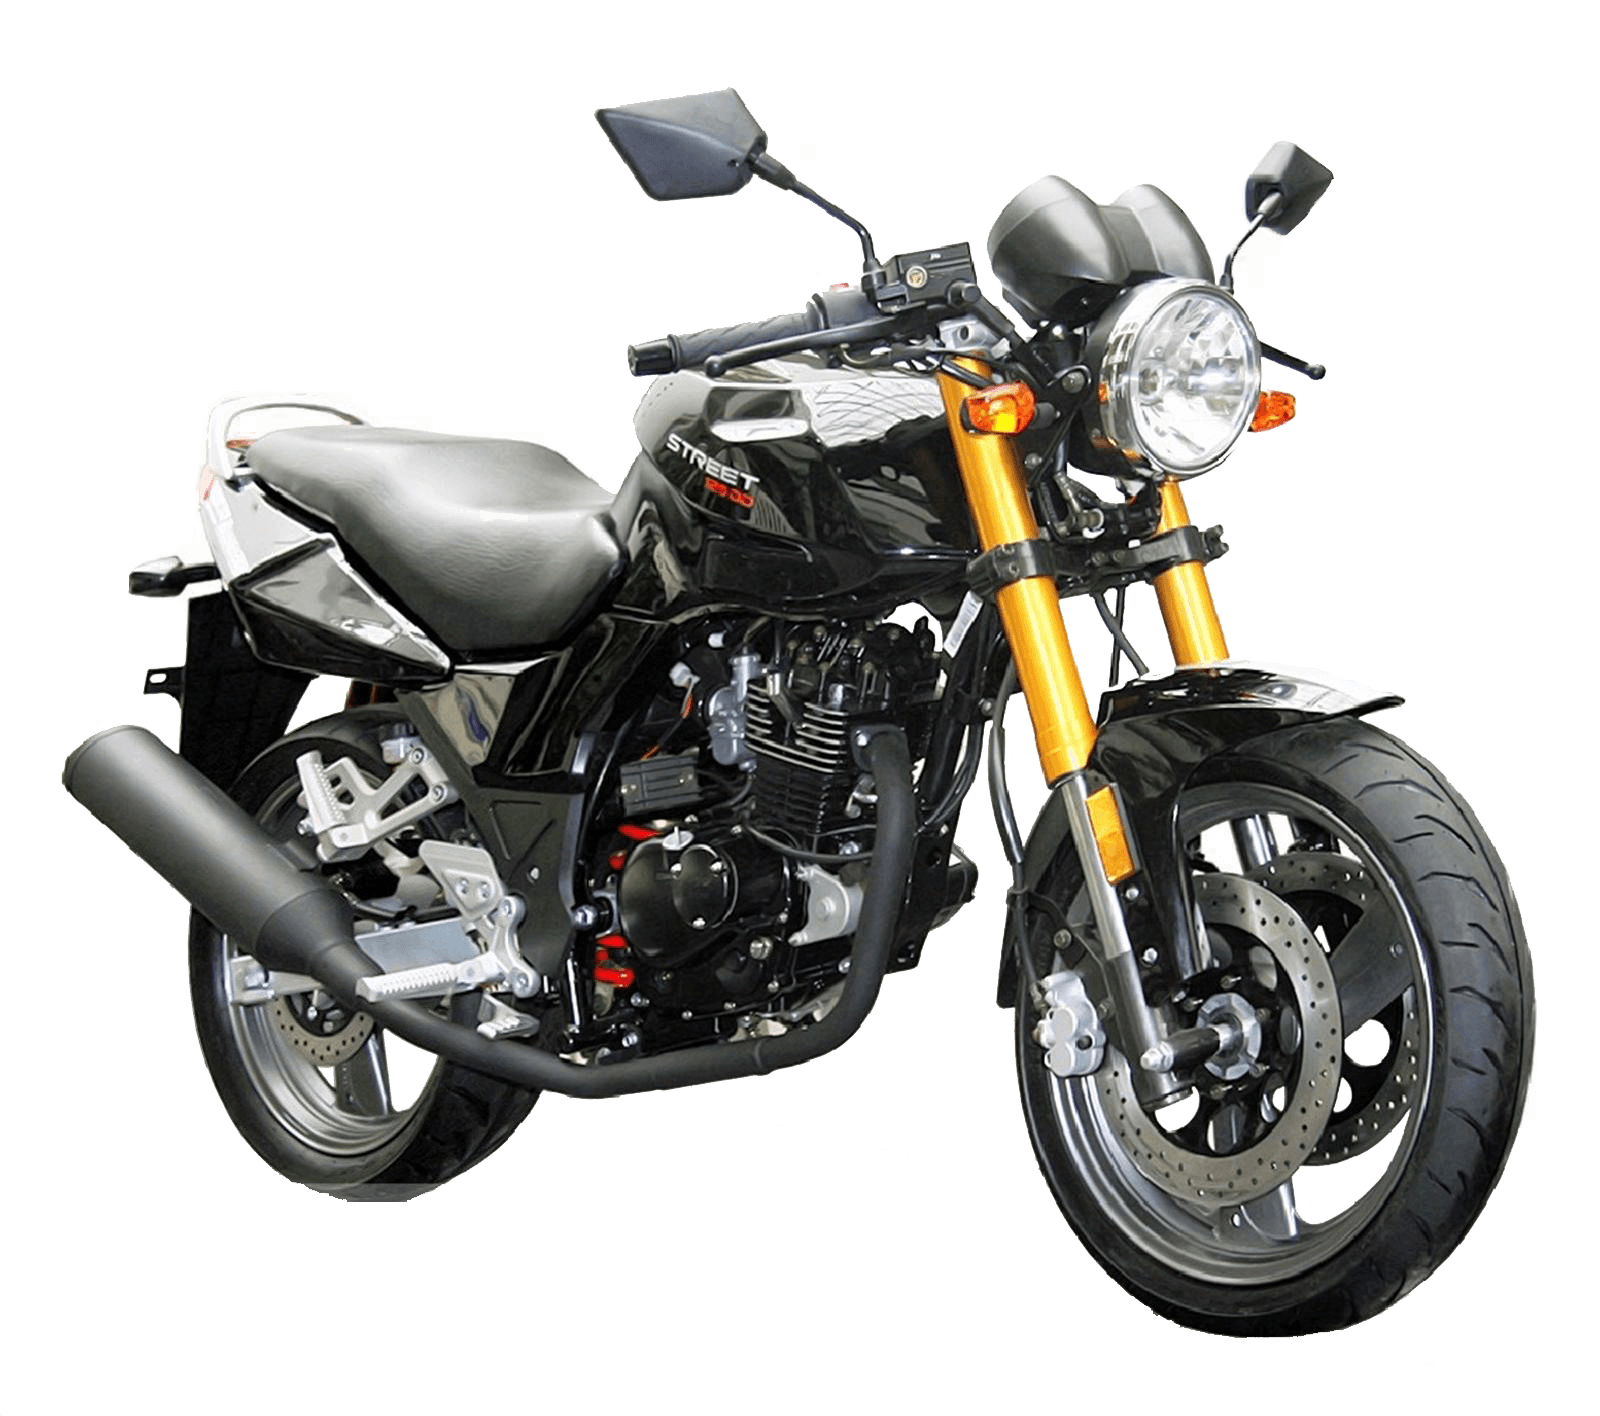 Moto Png Image Motorcycle Png Picture Download PNG Image - Motorcycle PNG